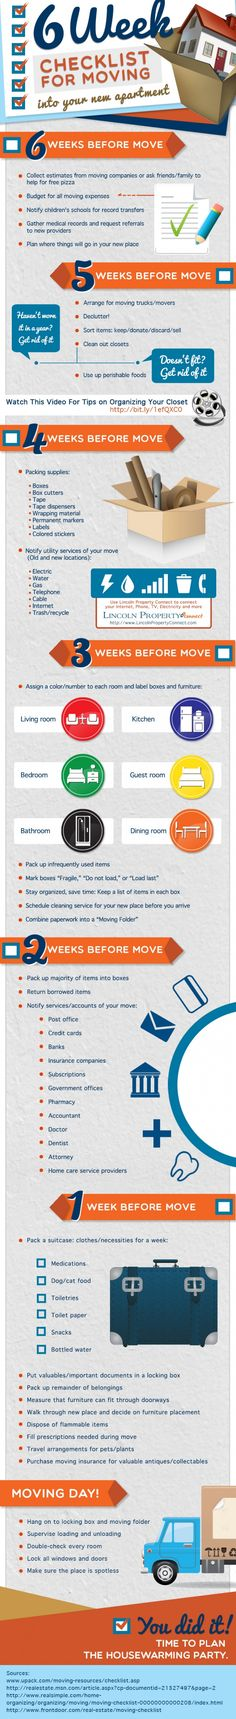 6 Week Checklist For Moving Into Your New Apartment #infographic